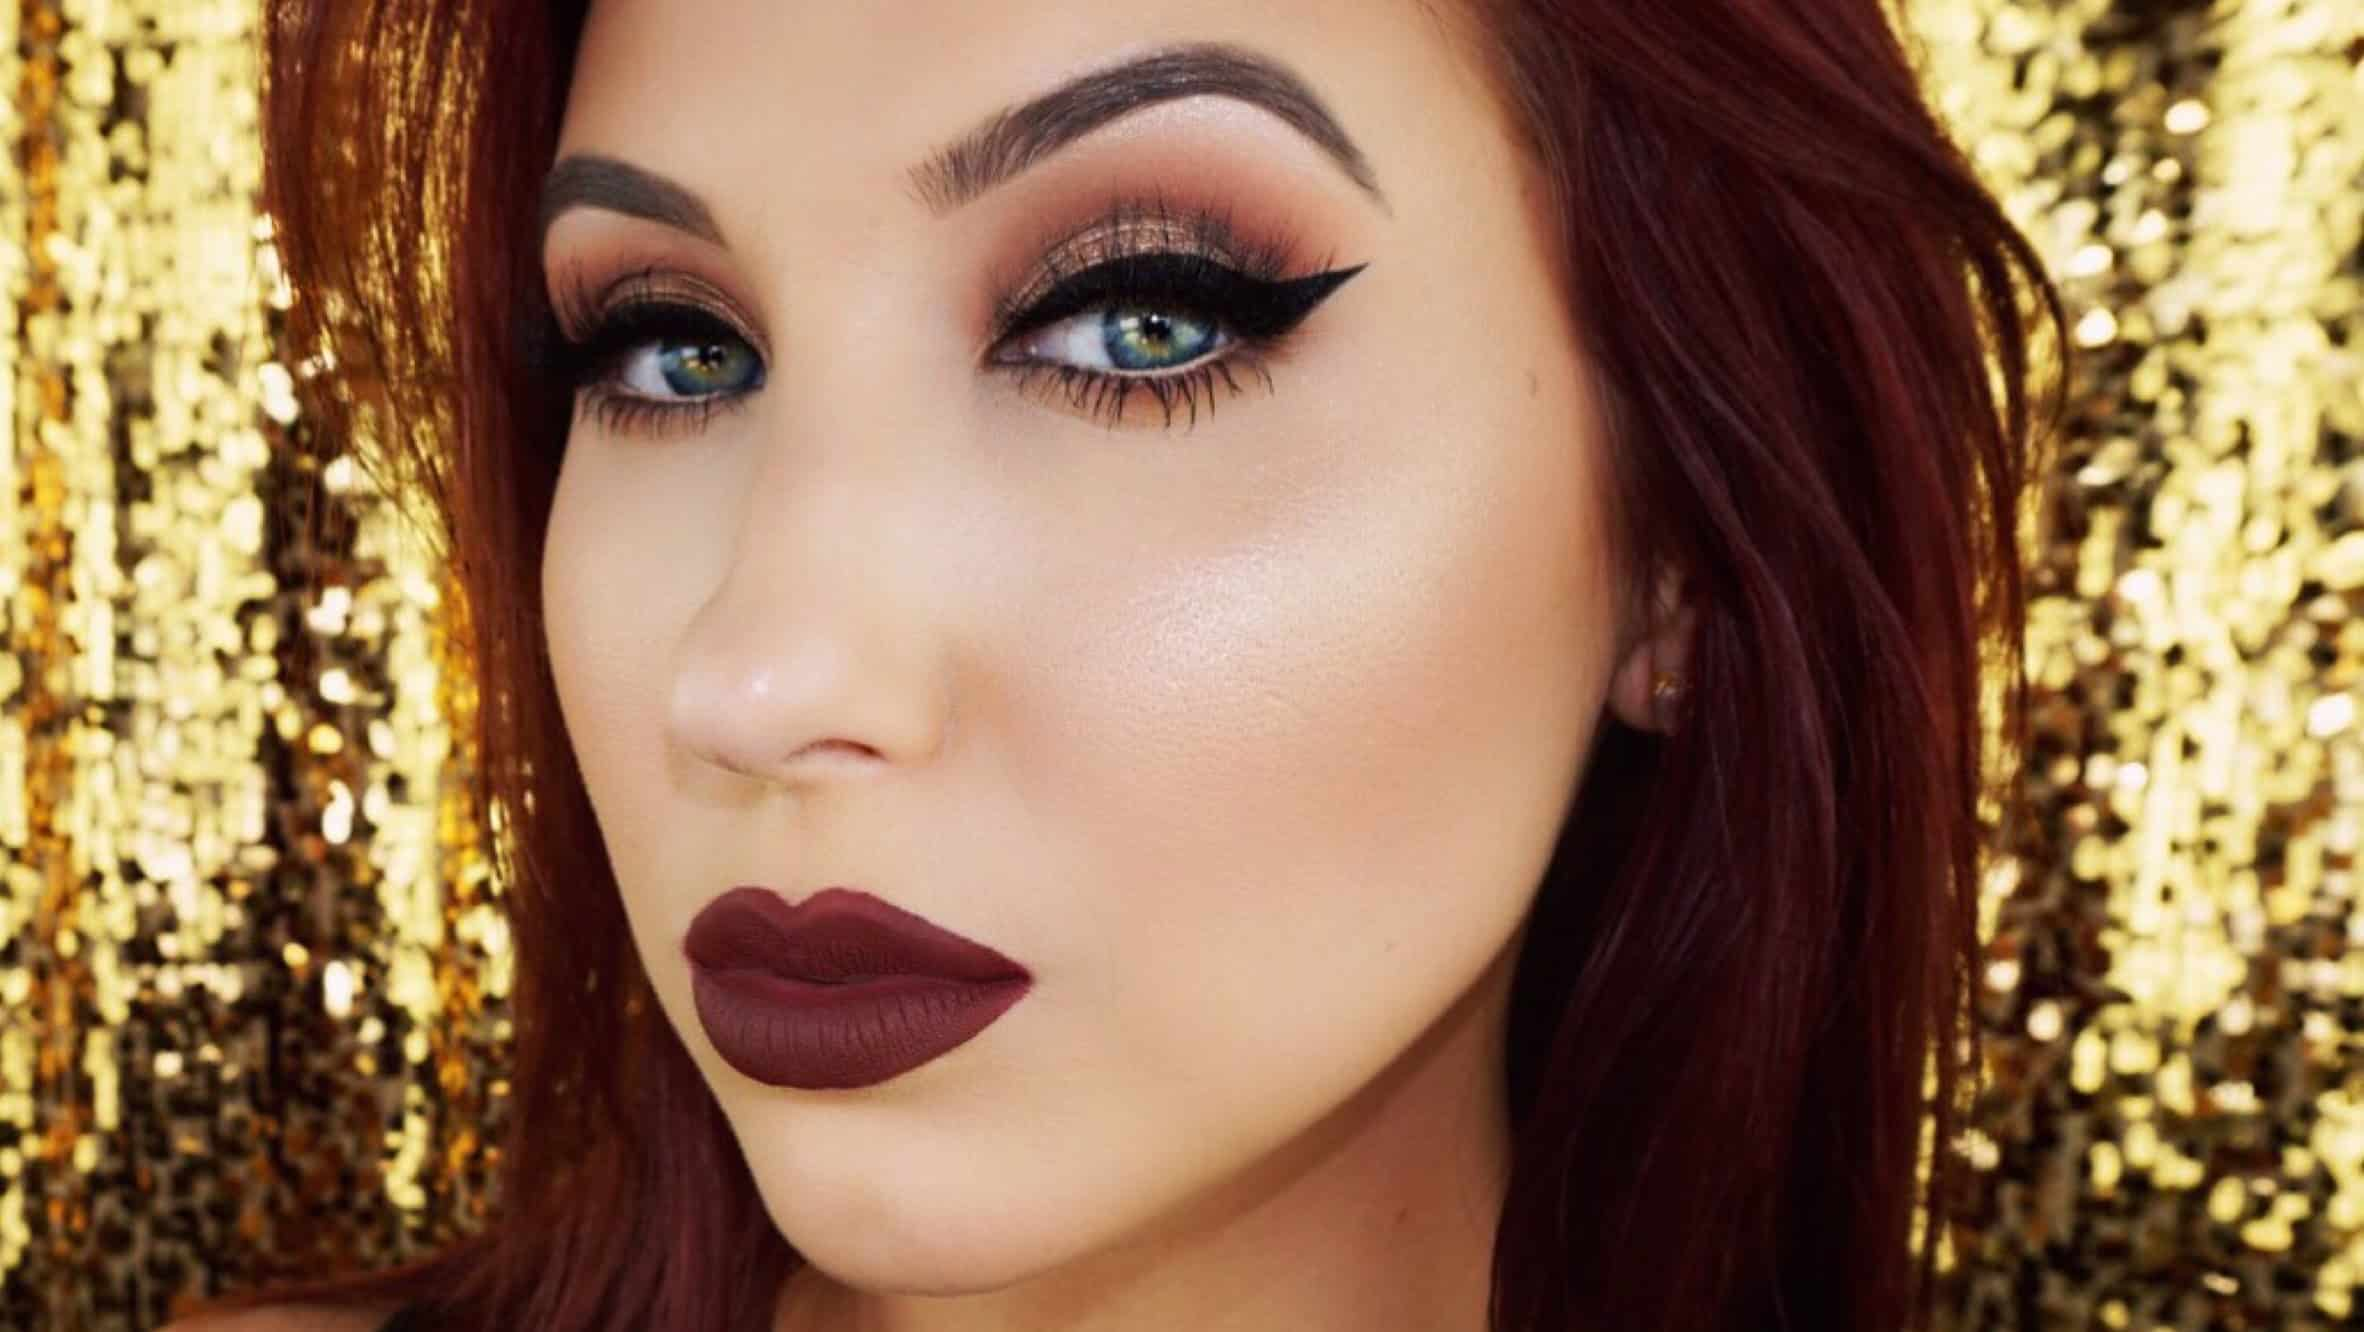 Dramatic cat eye and dark lips